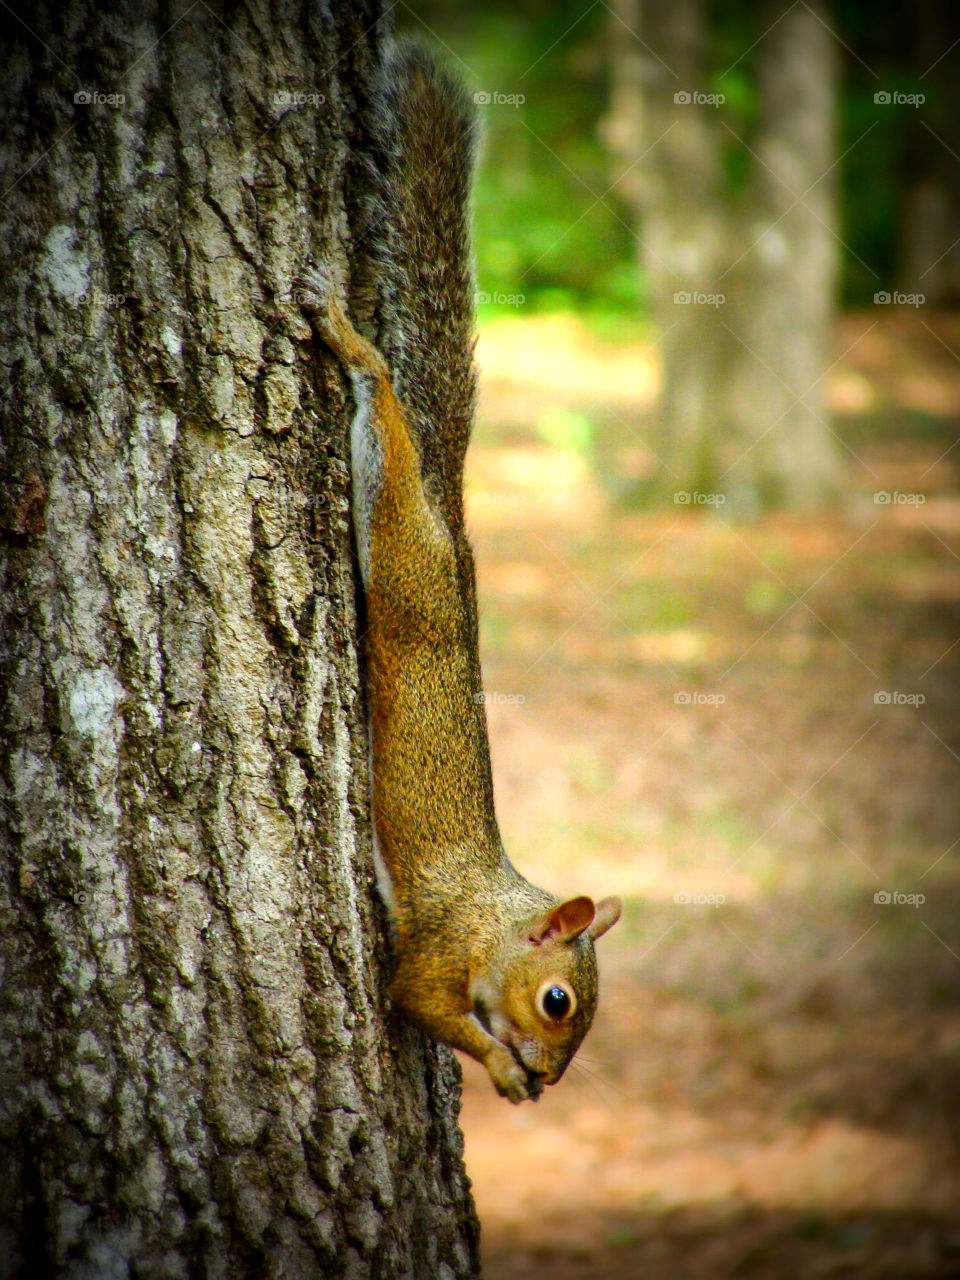 A squirrel pauses for a nibble while climbing down a tree trunk.